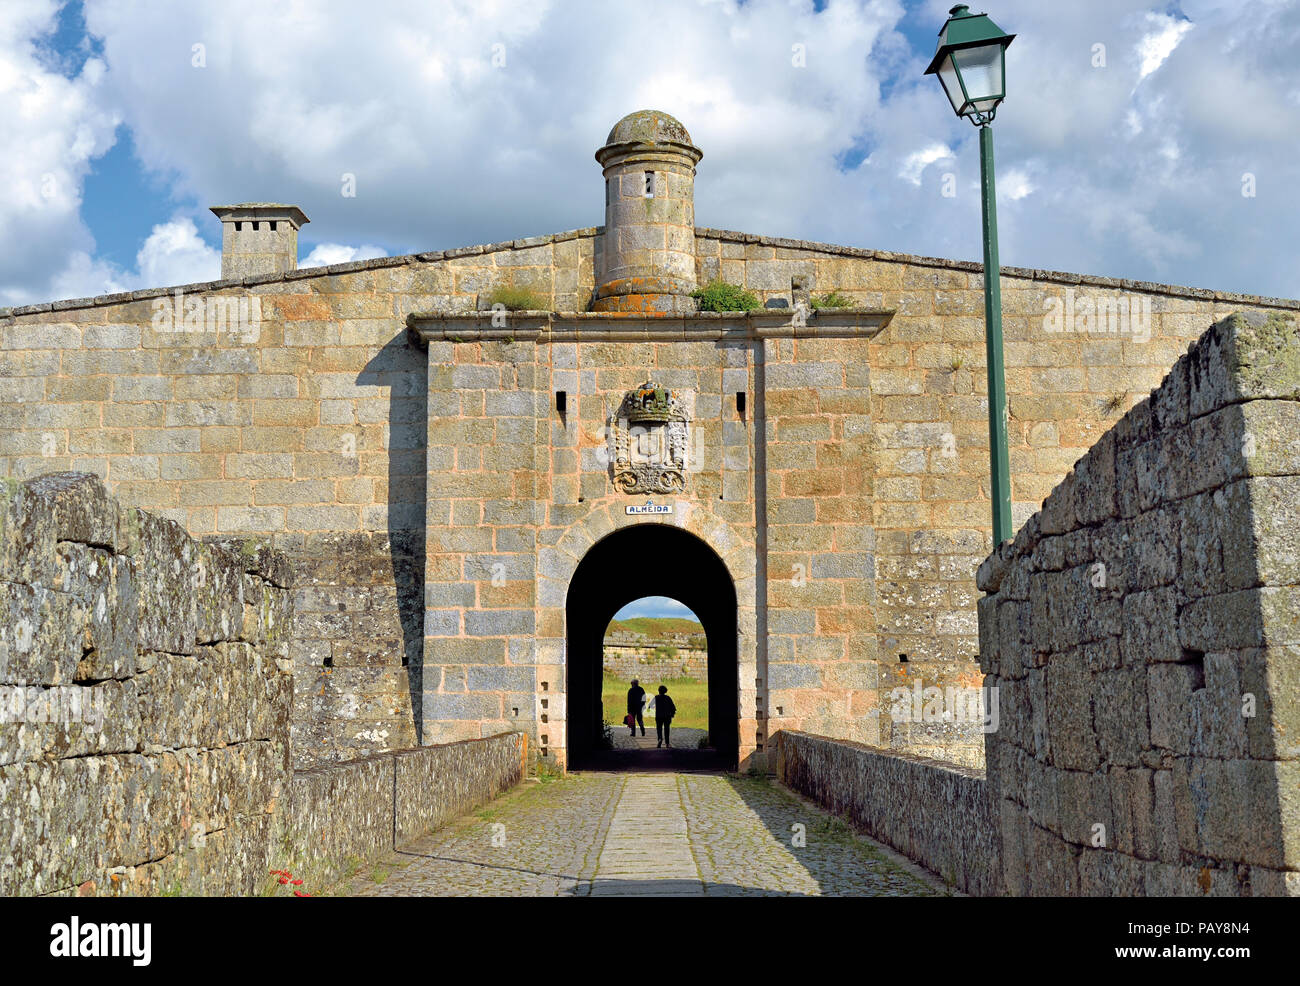 Two people walking through a tunnel of a historic town gate - Stock Image